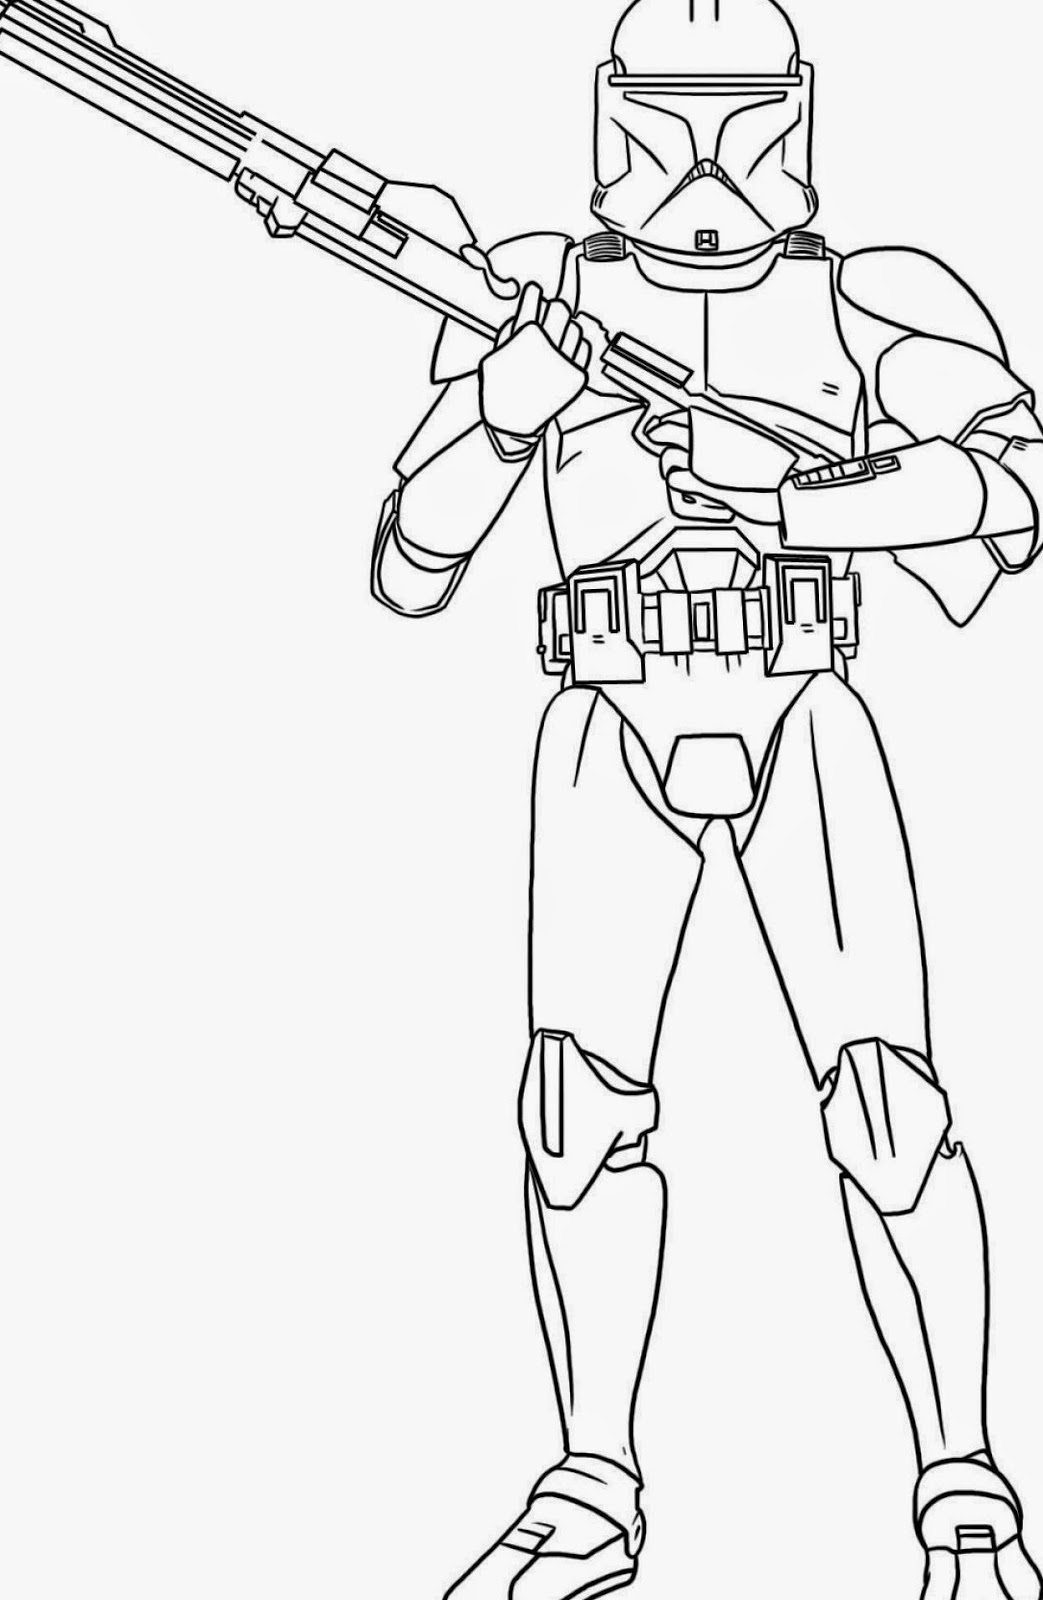 star wars character coloring pages - photo#37